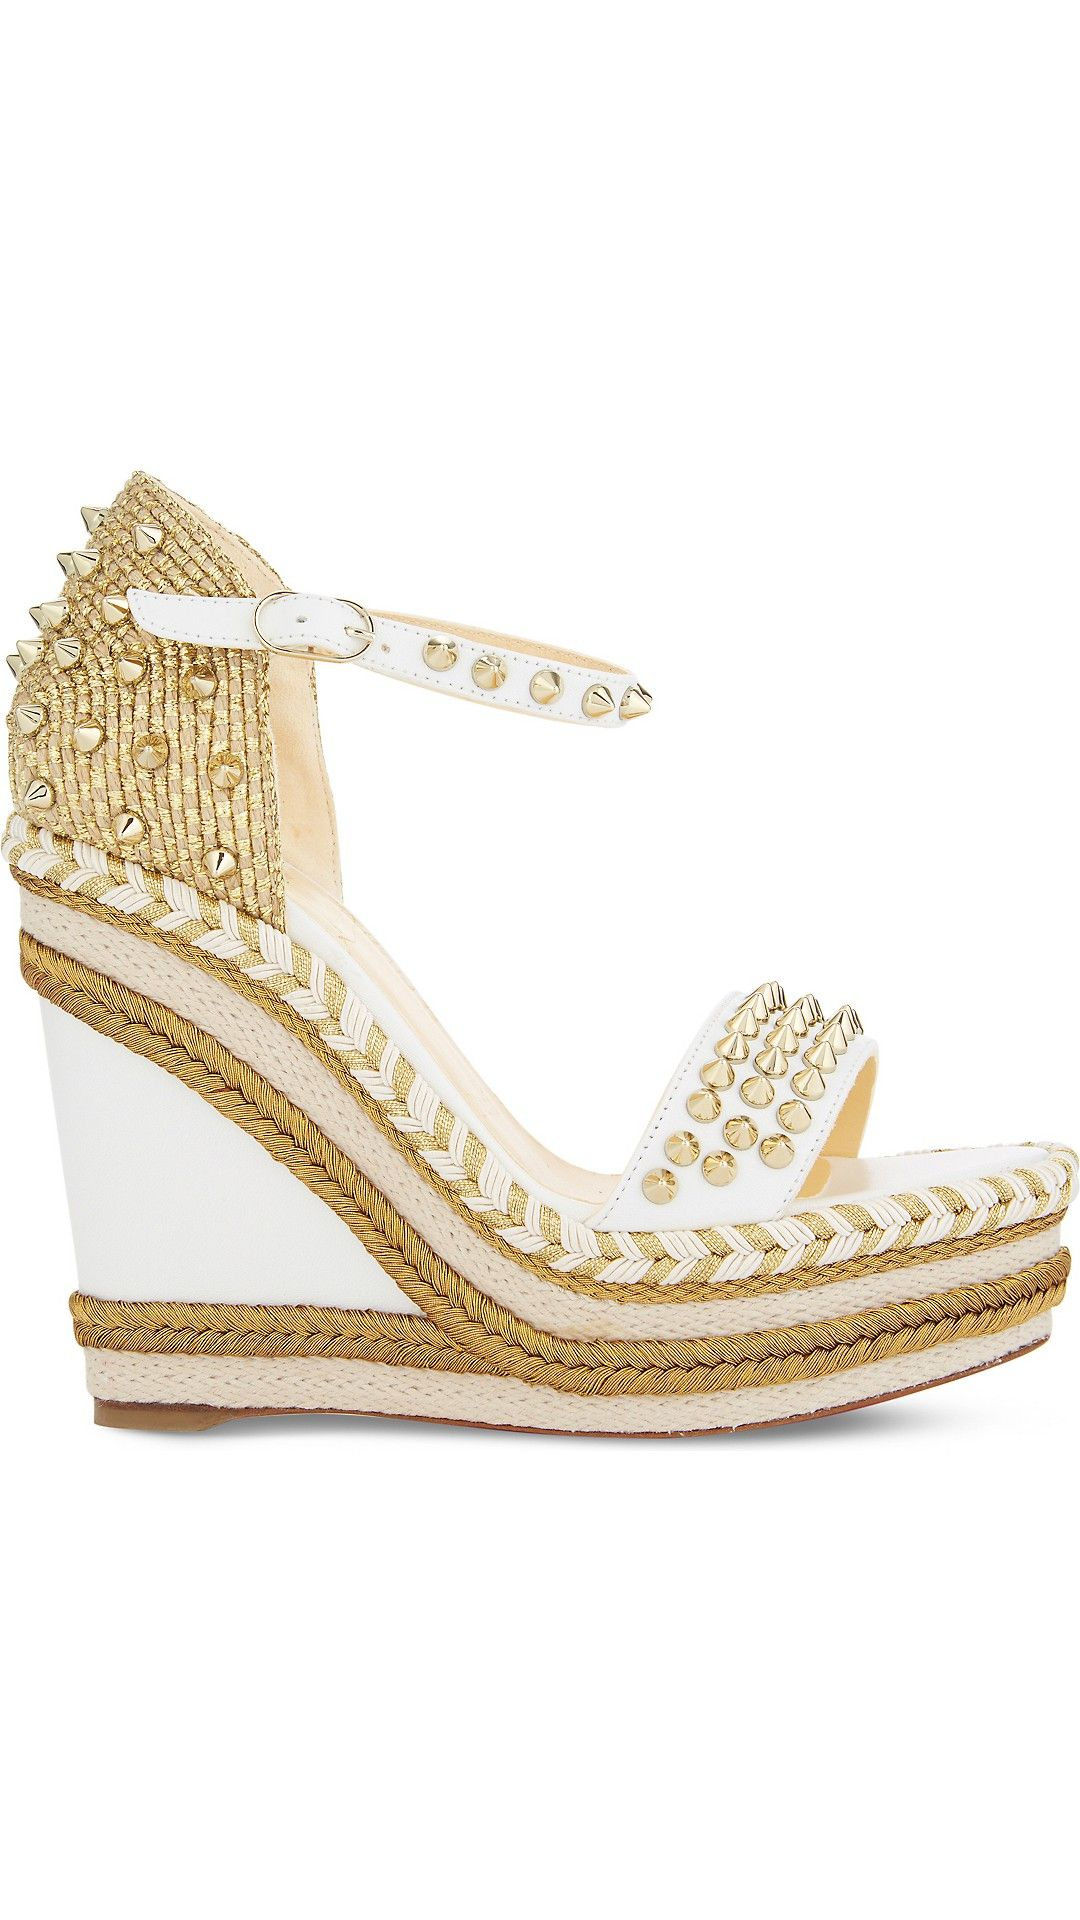 huge selection of cfc4d d98c6 Madmonica 120 nappa shiny | shoes | Shoes, Louboutin wedges ...